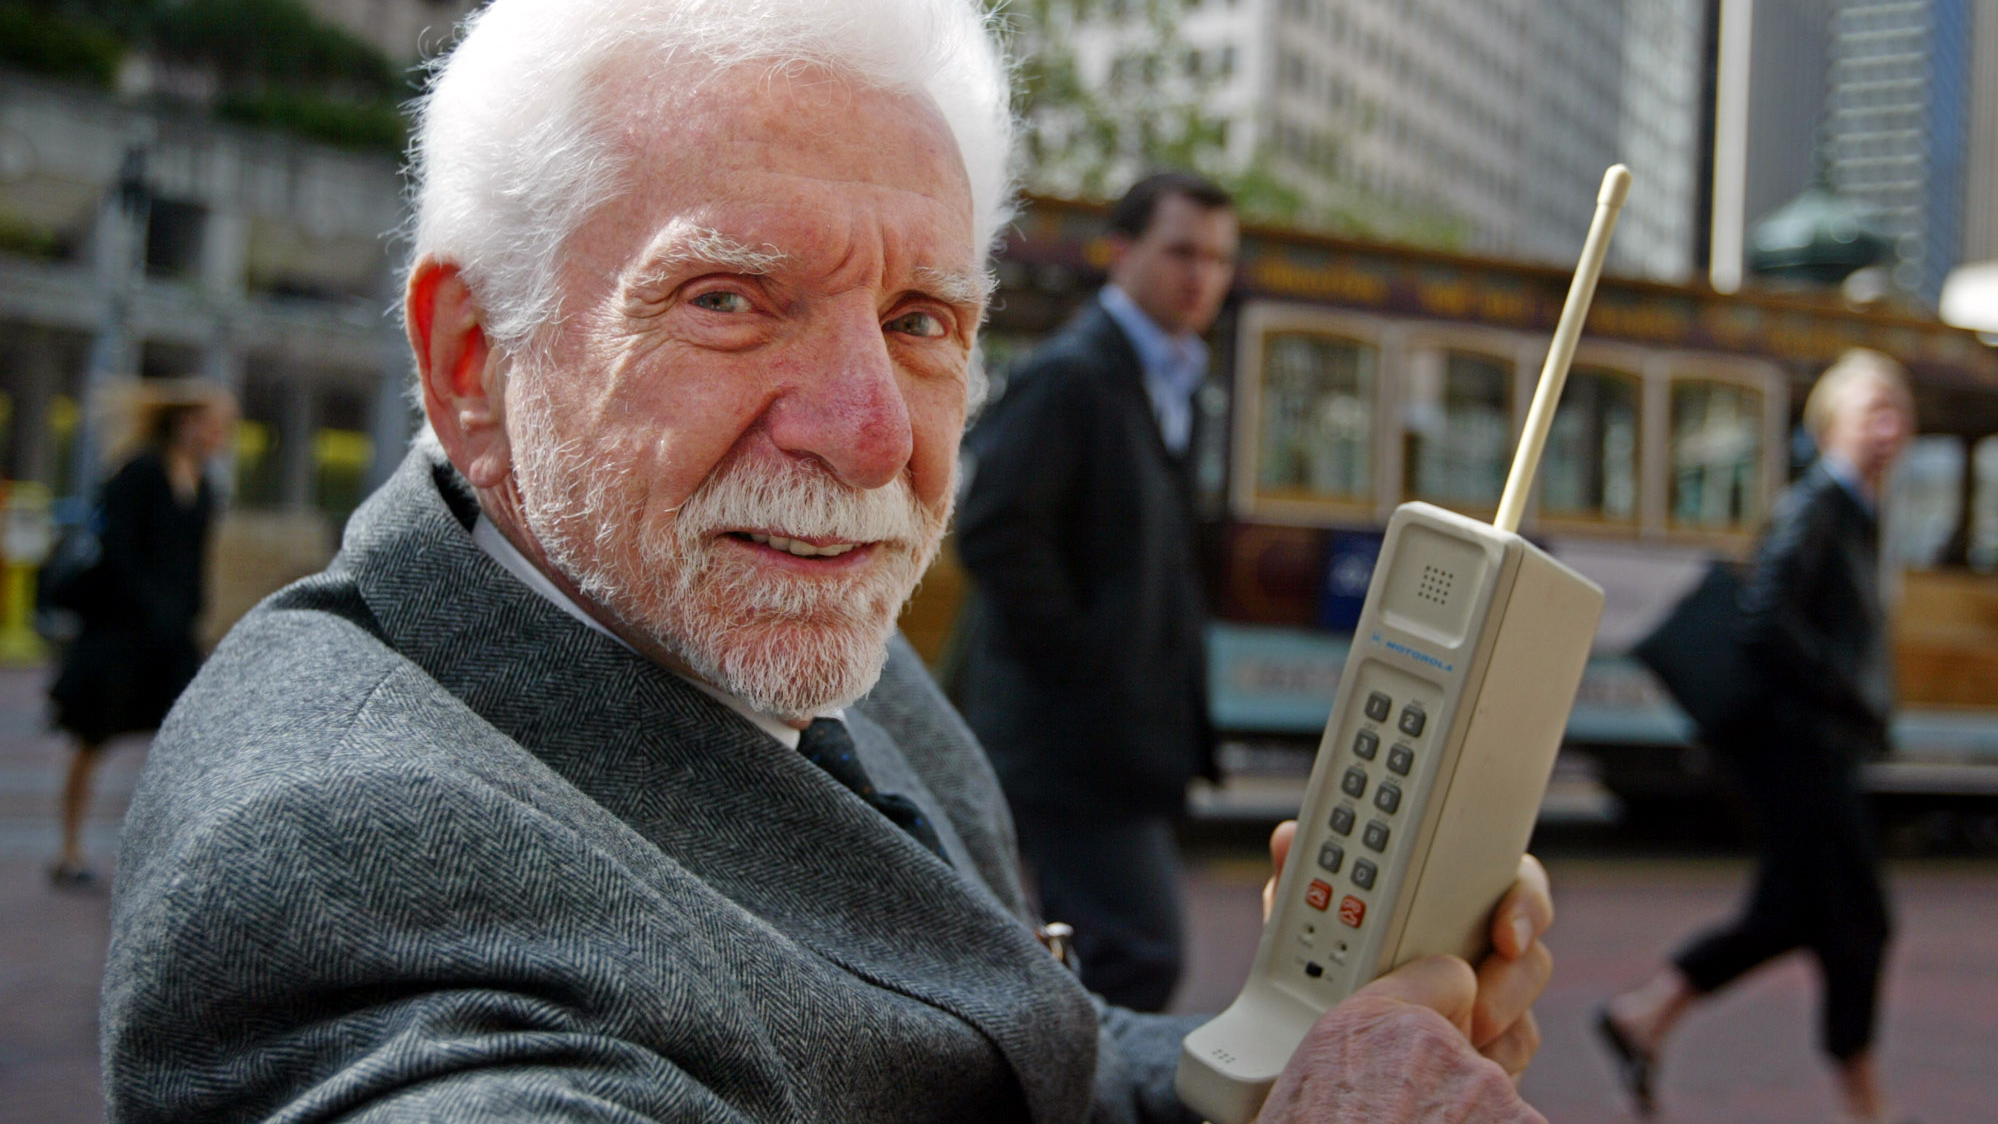 The first mobile phone call was made 40 years ago today